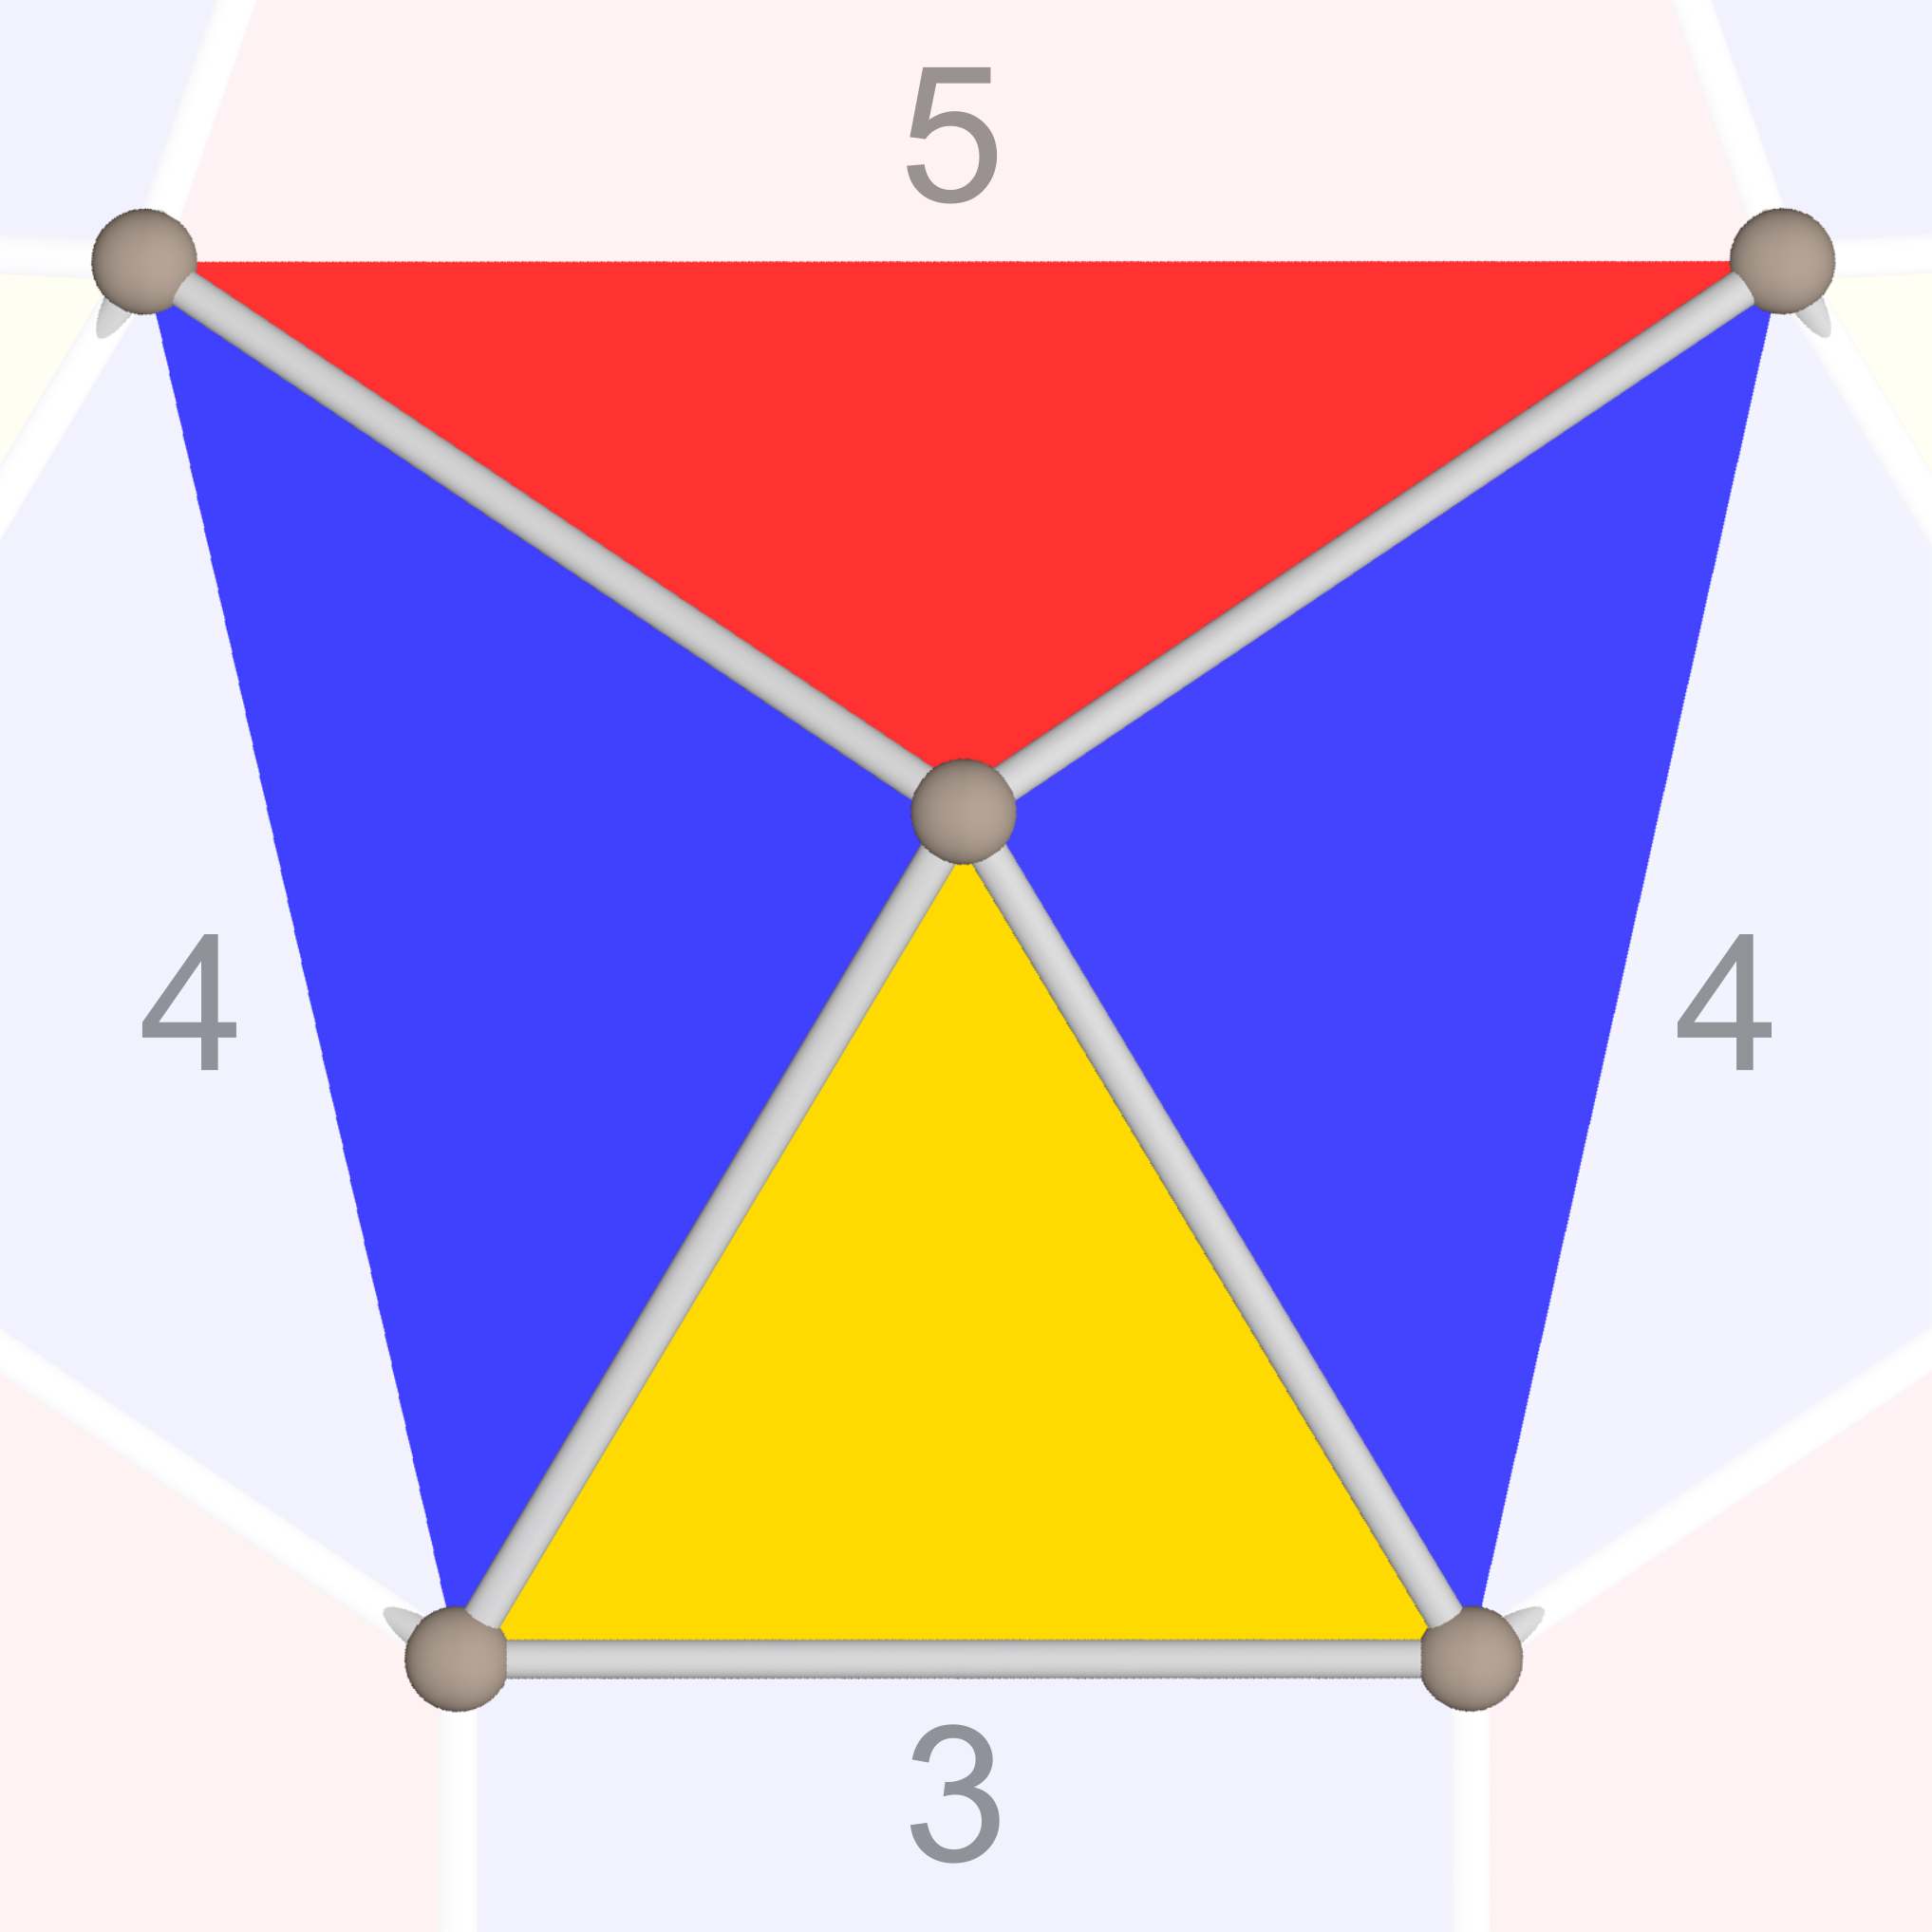 file:polyhedron small rhombi 12-20 vertfig with labels